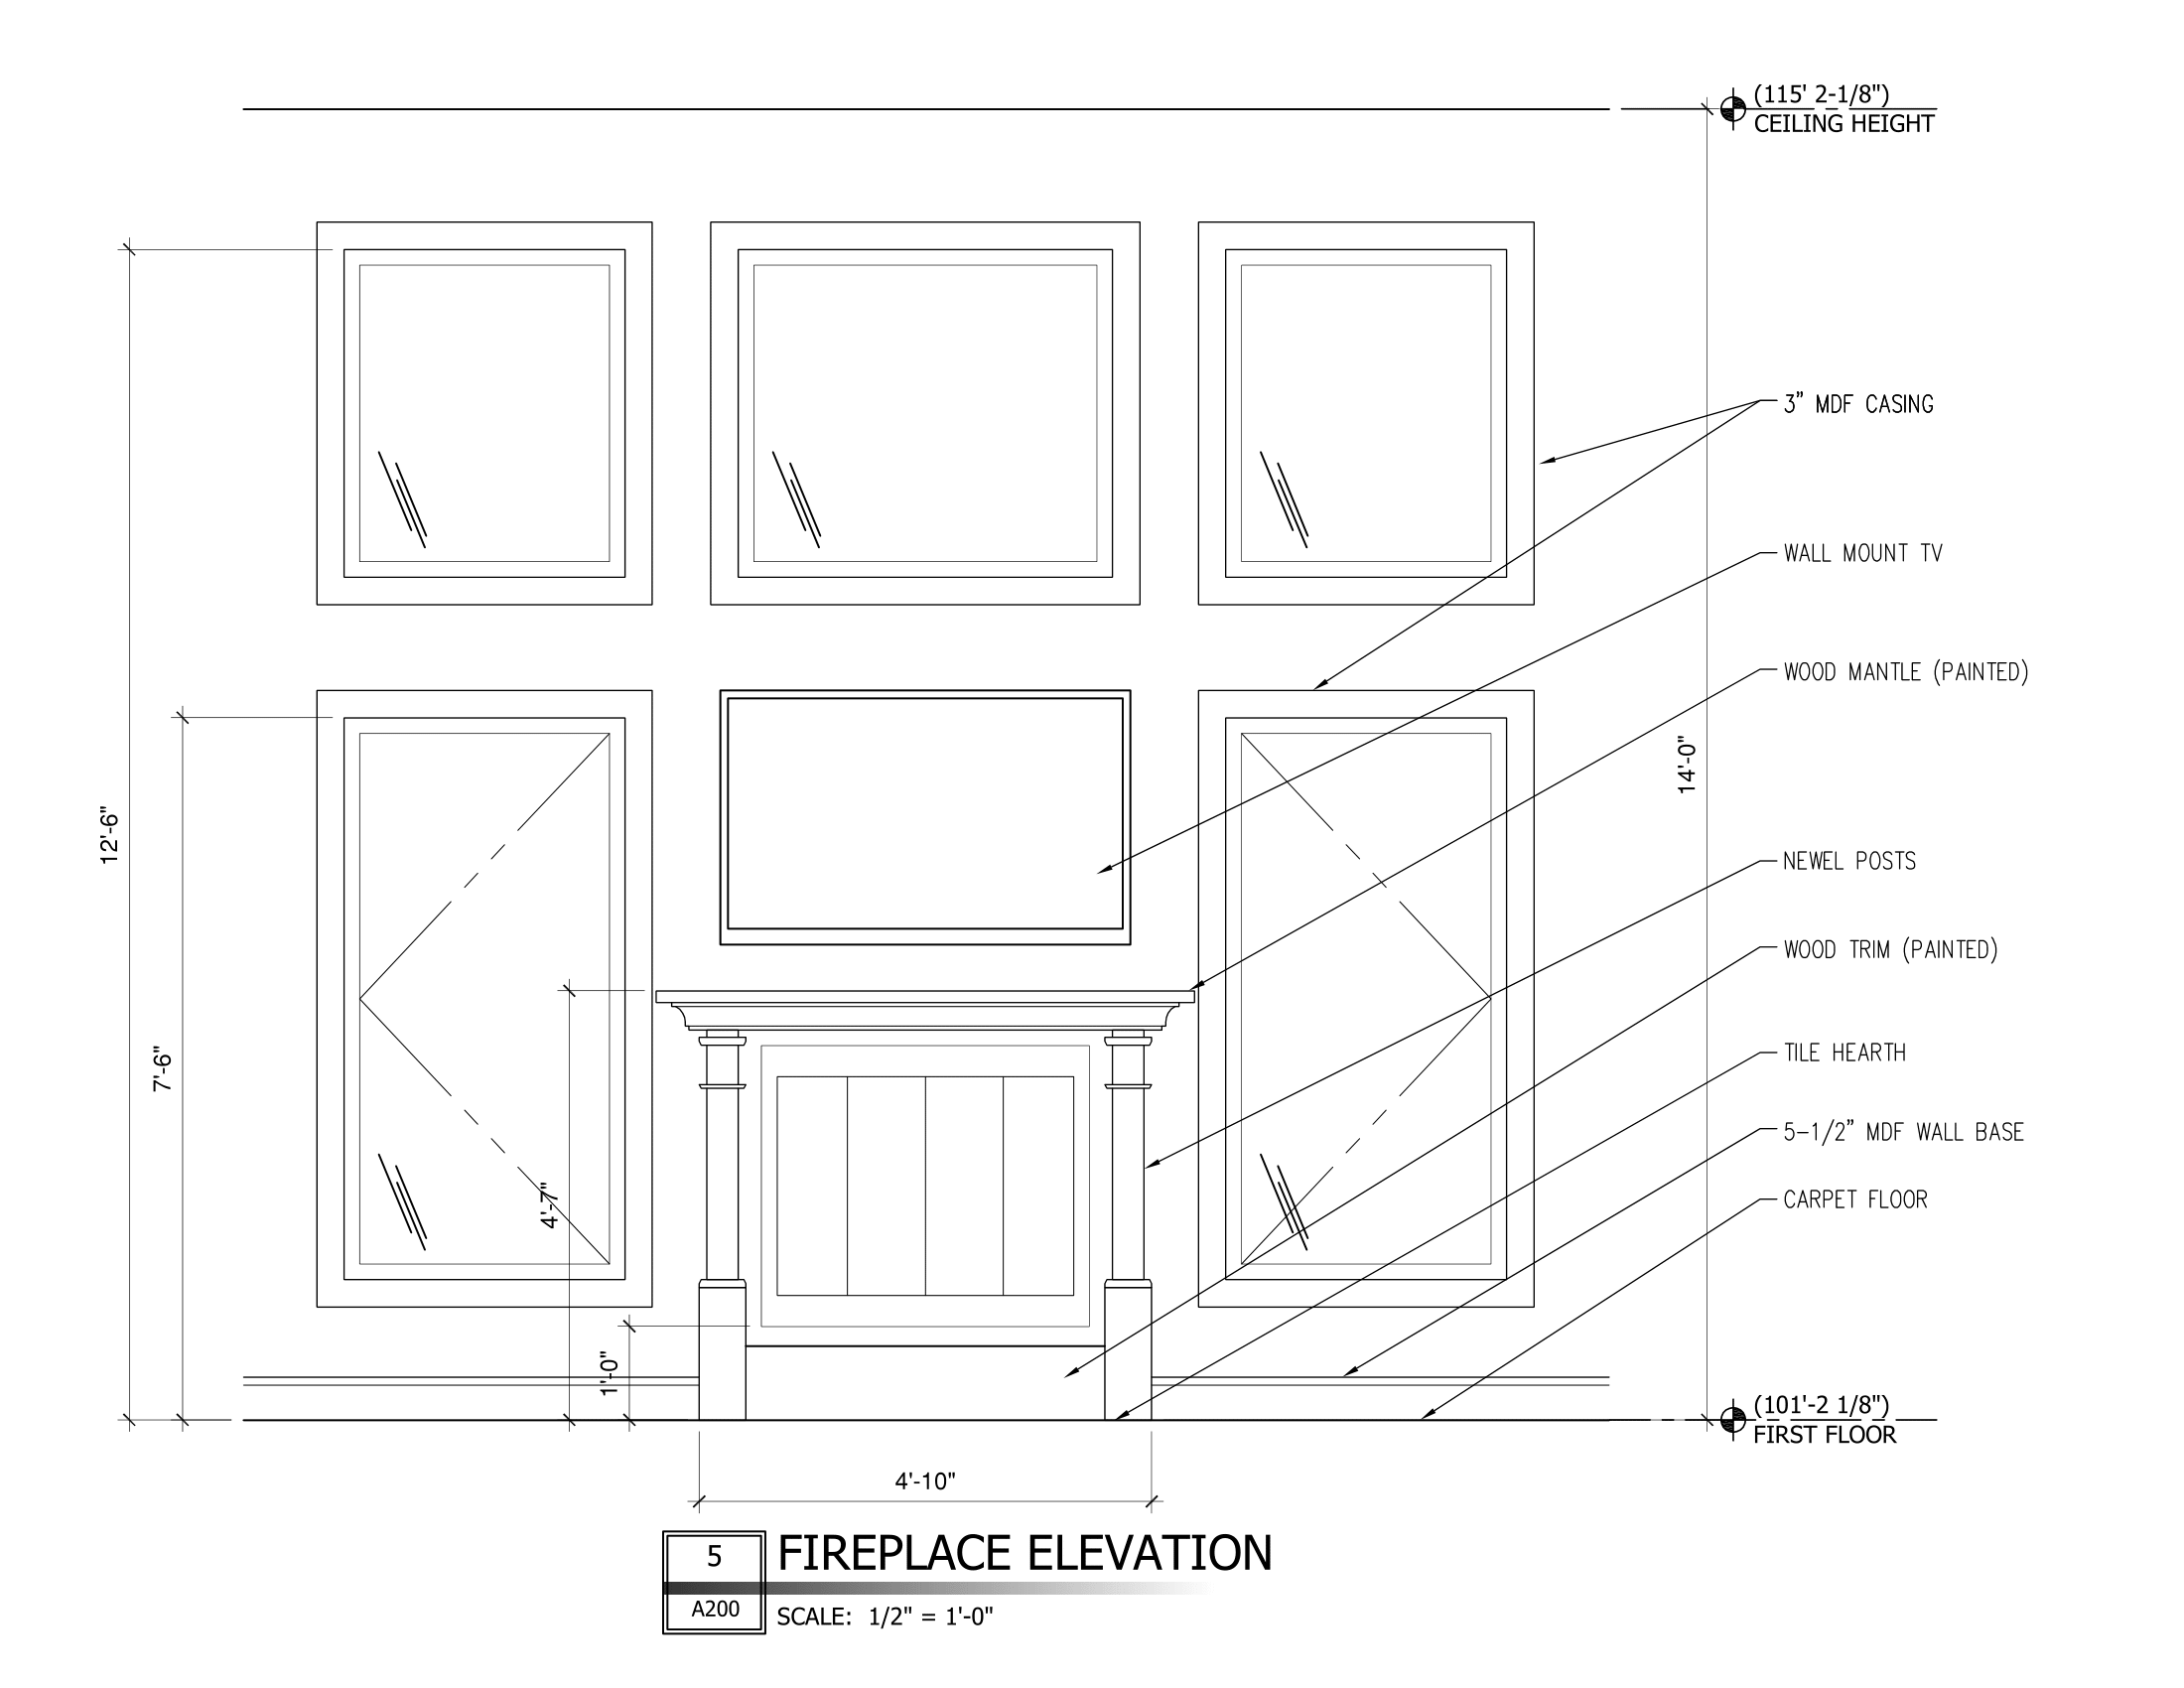 Home Plans - Milford Residence 2